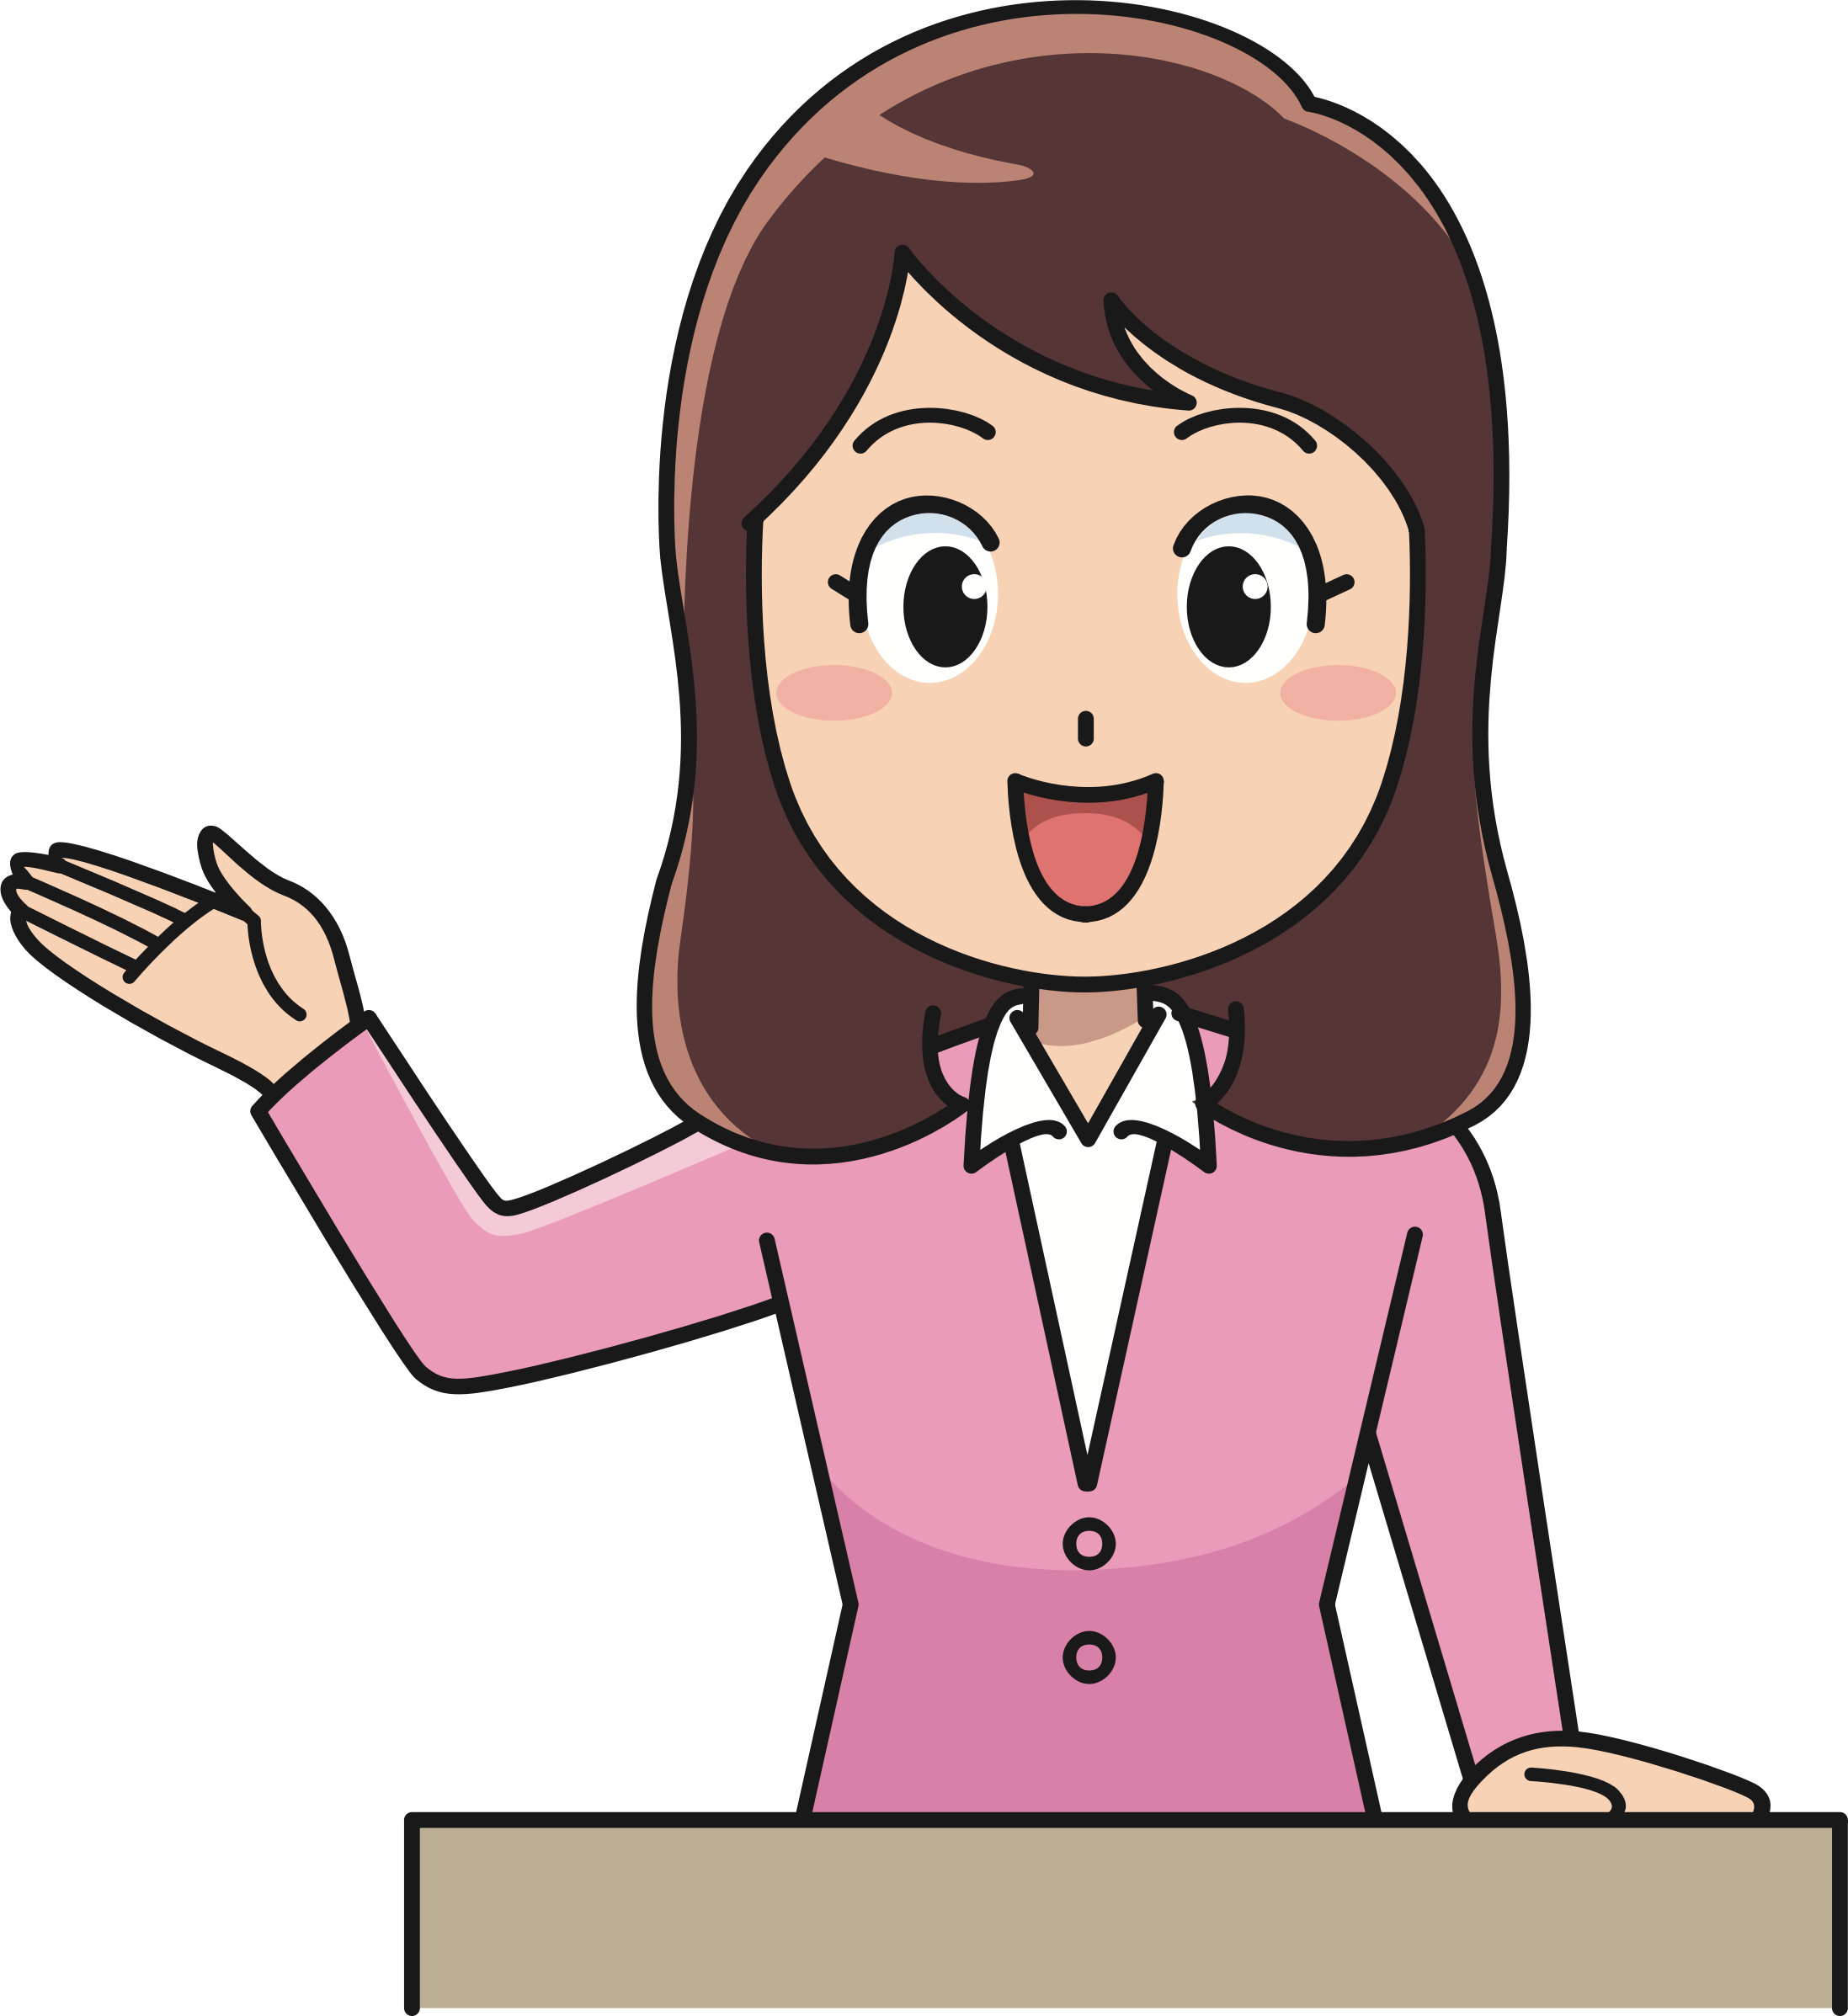 Person clipart female. Instructor big image png